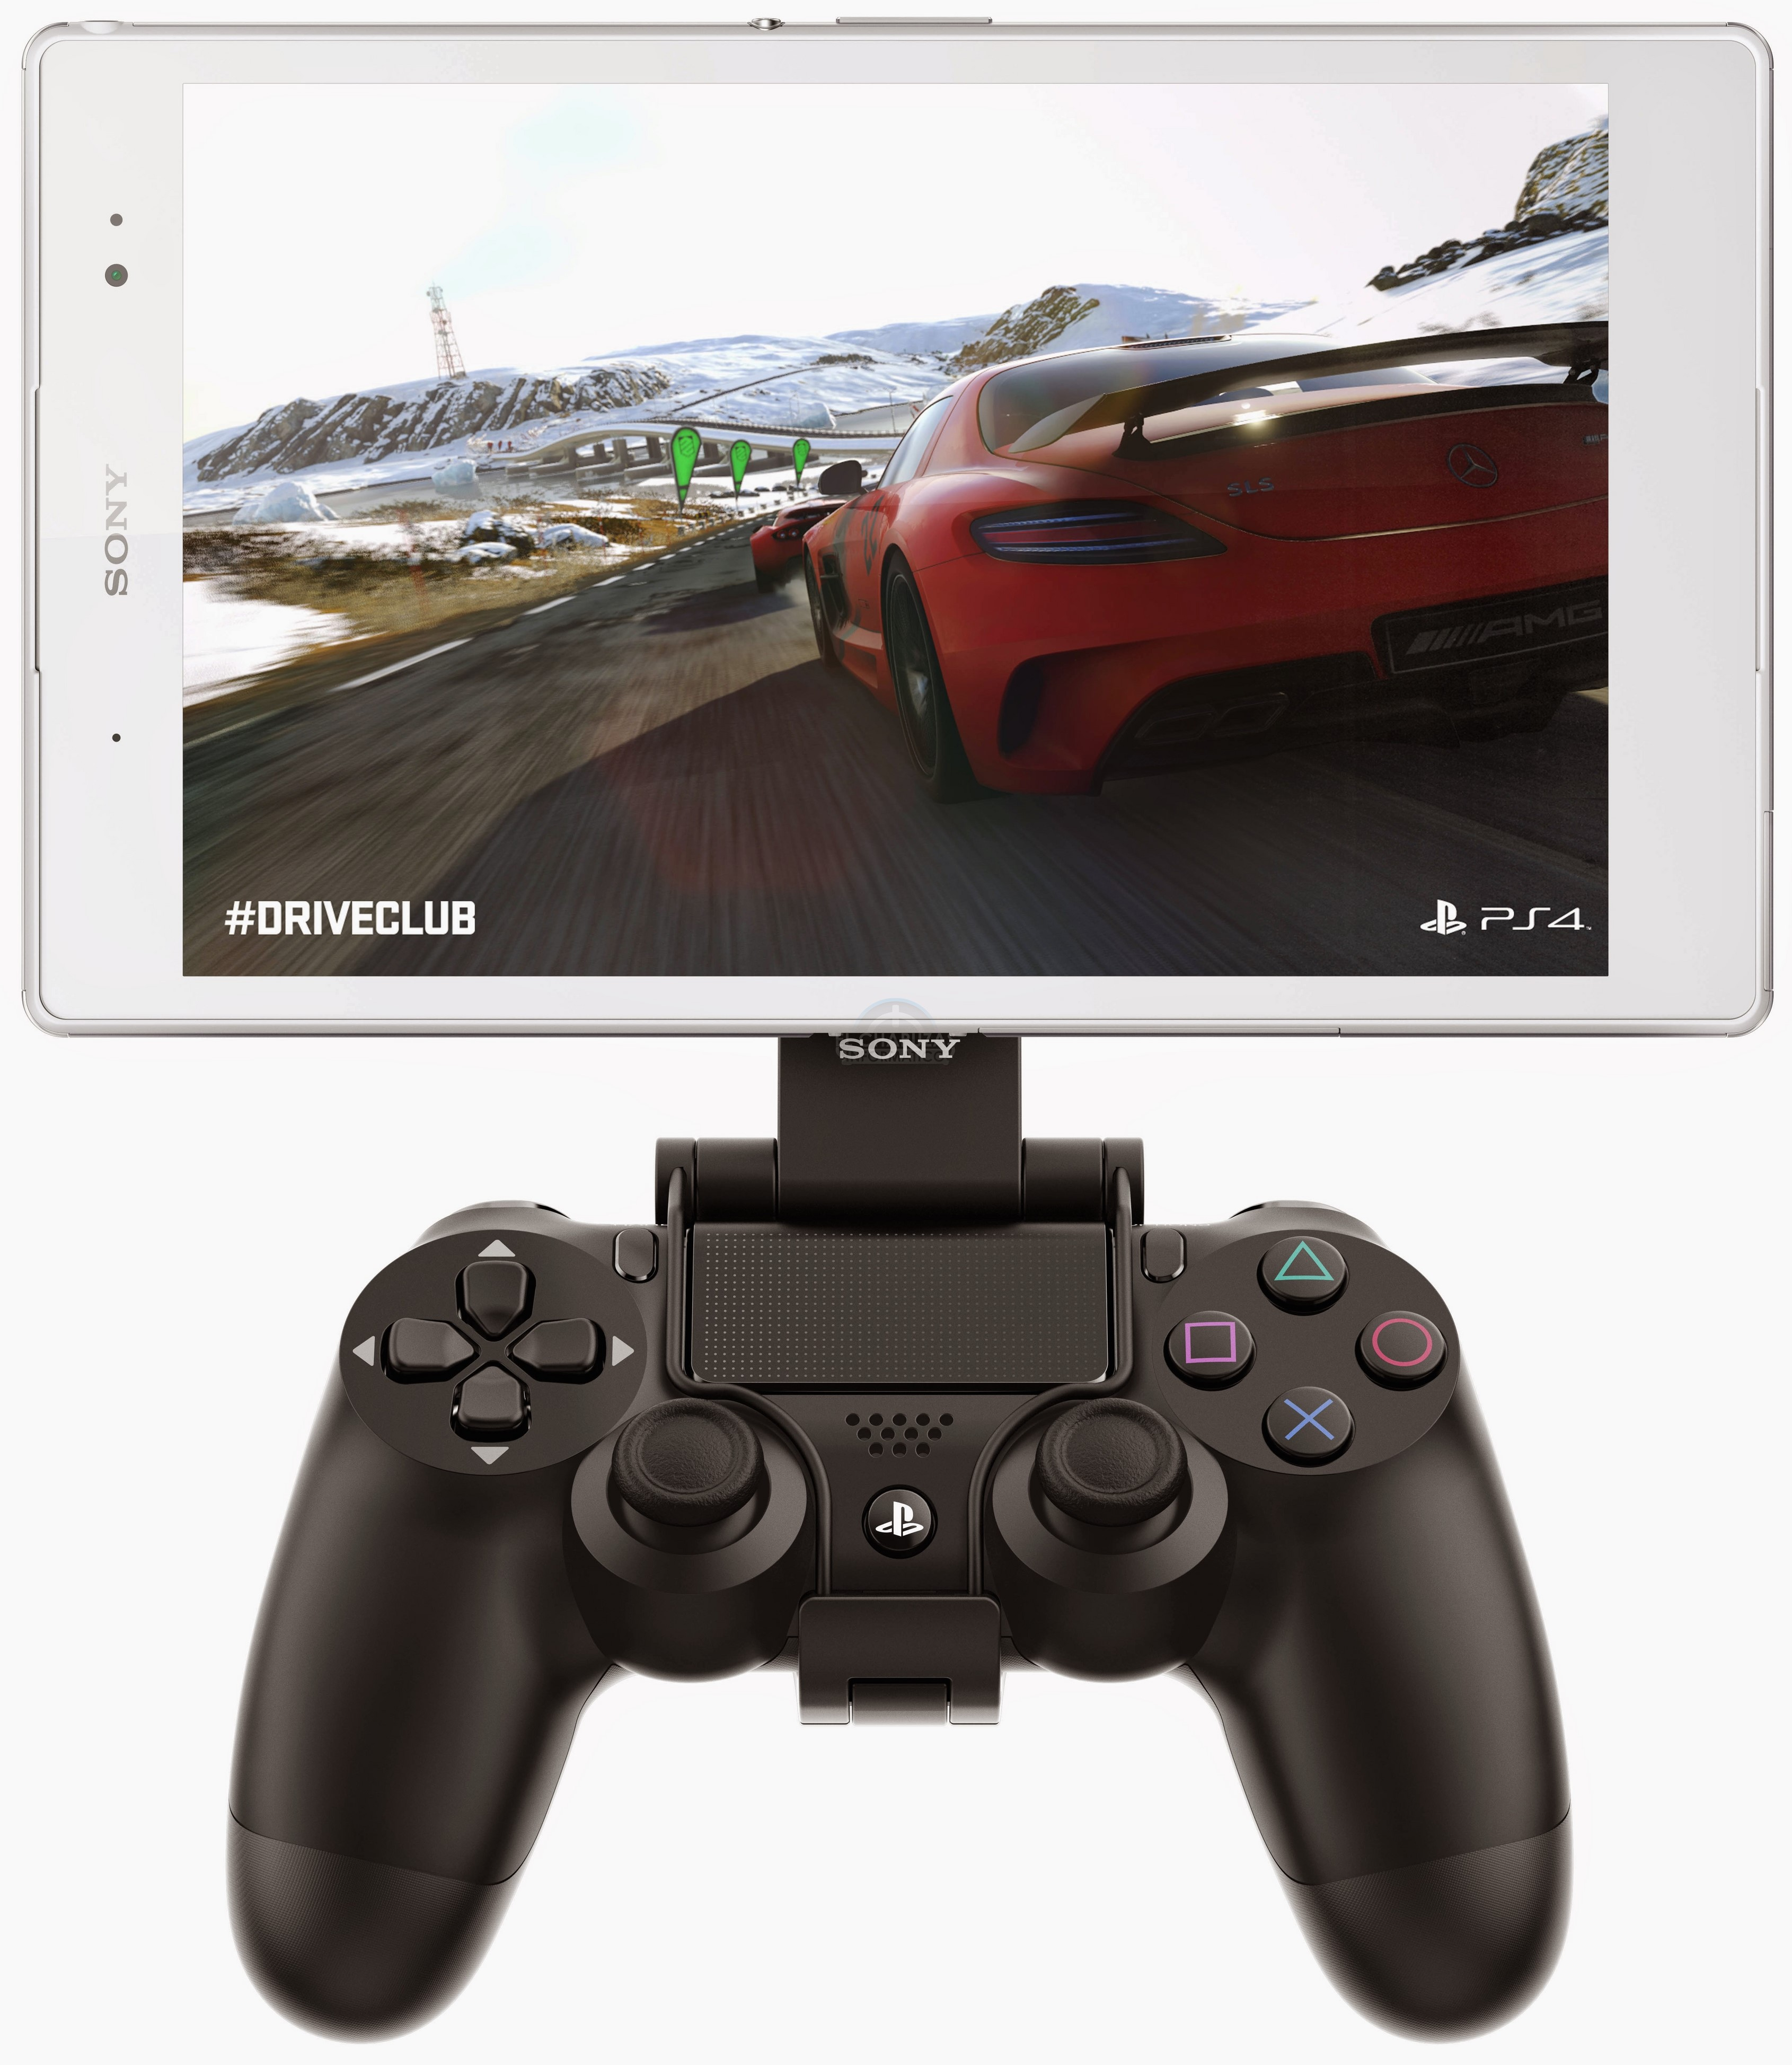 Sony Xperia Z3 Tablet Compact - PlayStation 4